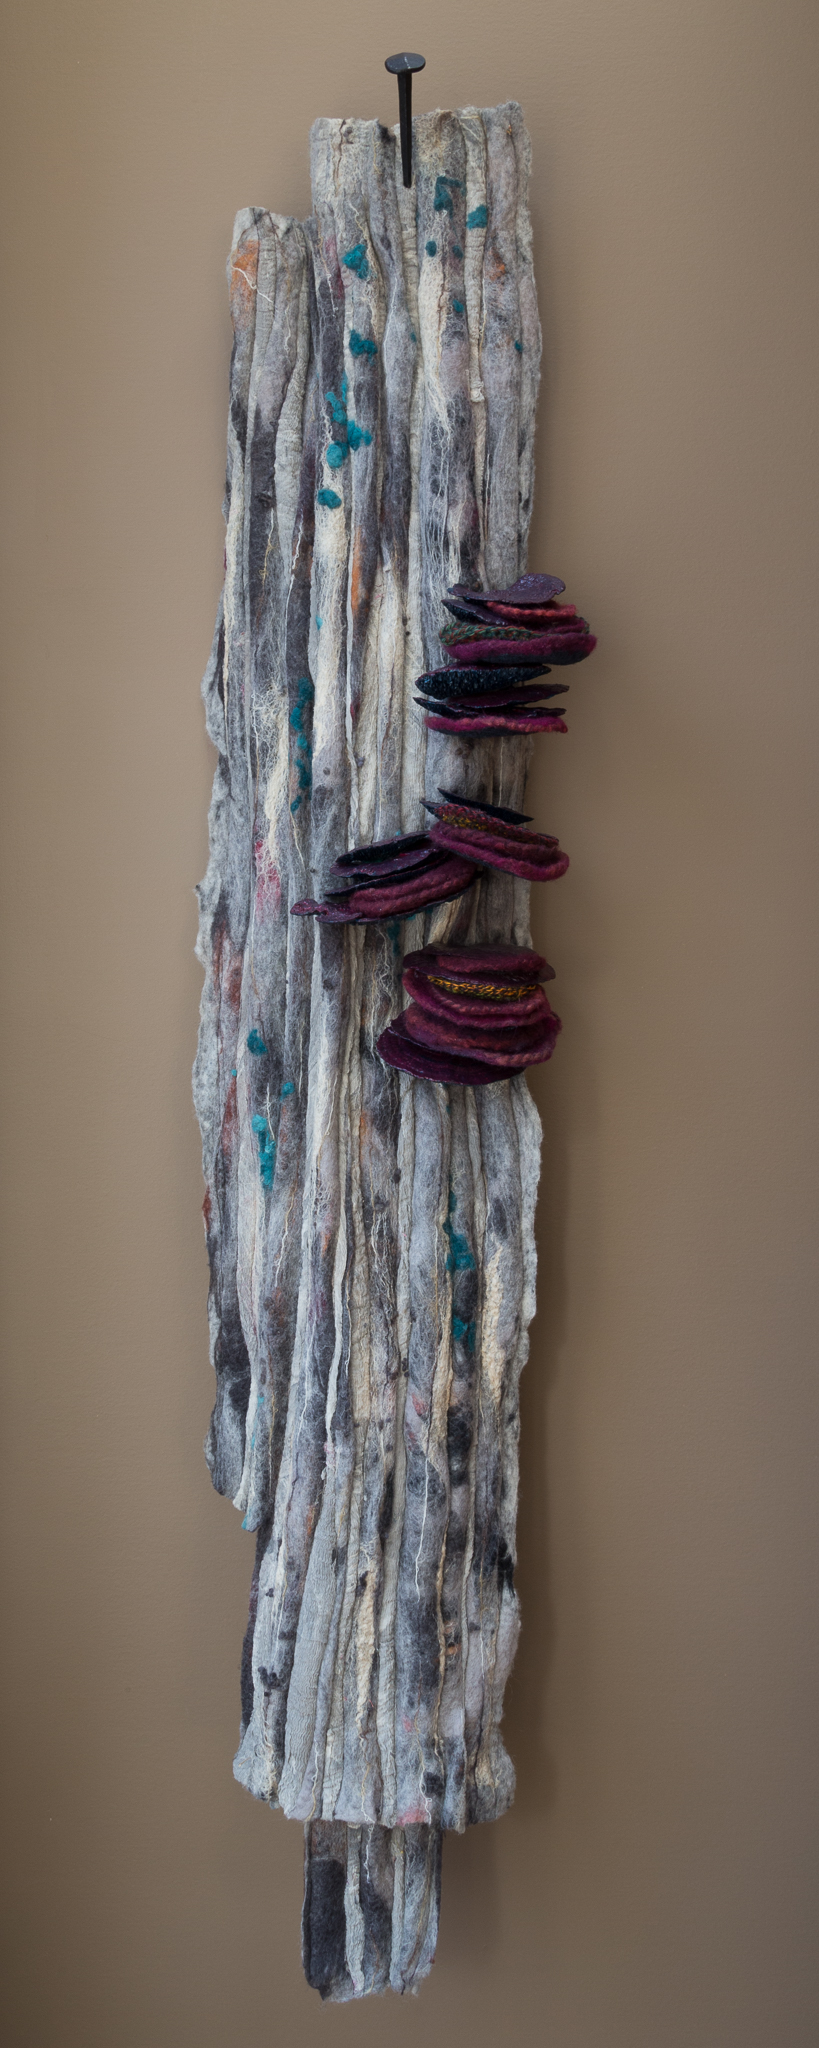 decomposed   handmade felt, mixed media   50 x 10 x 8